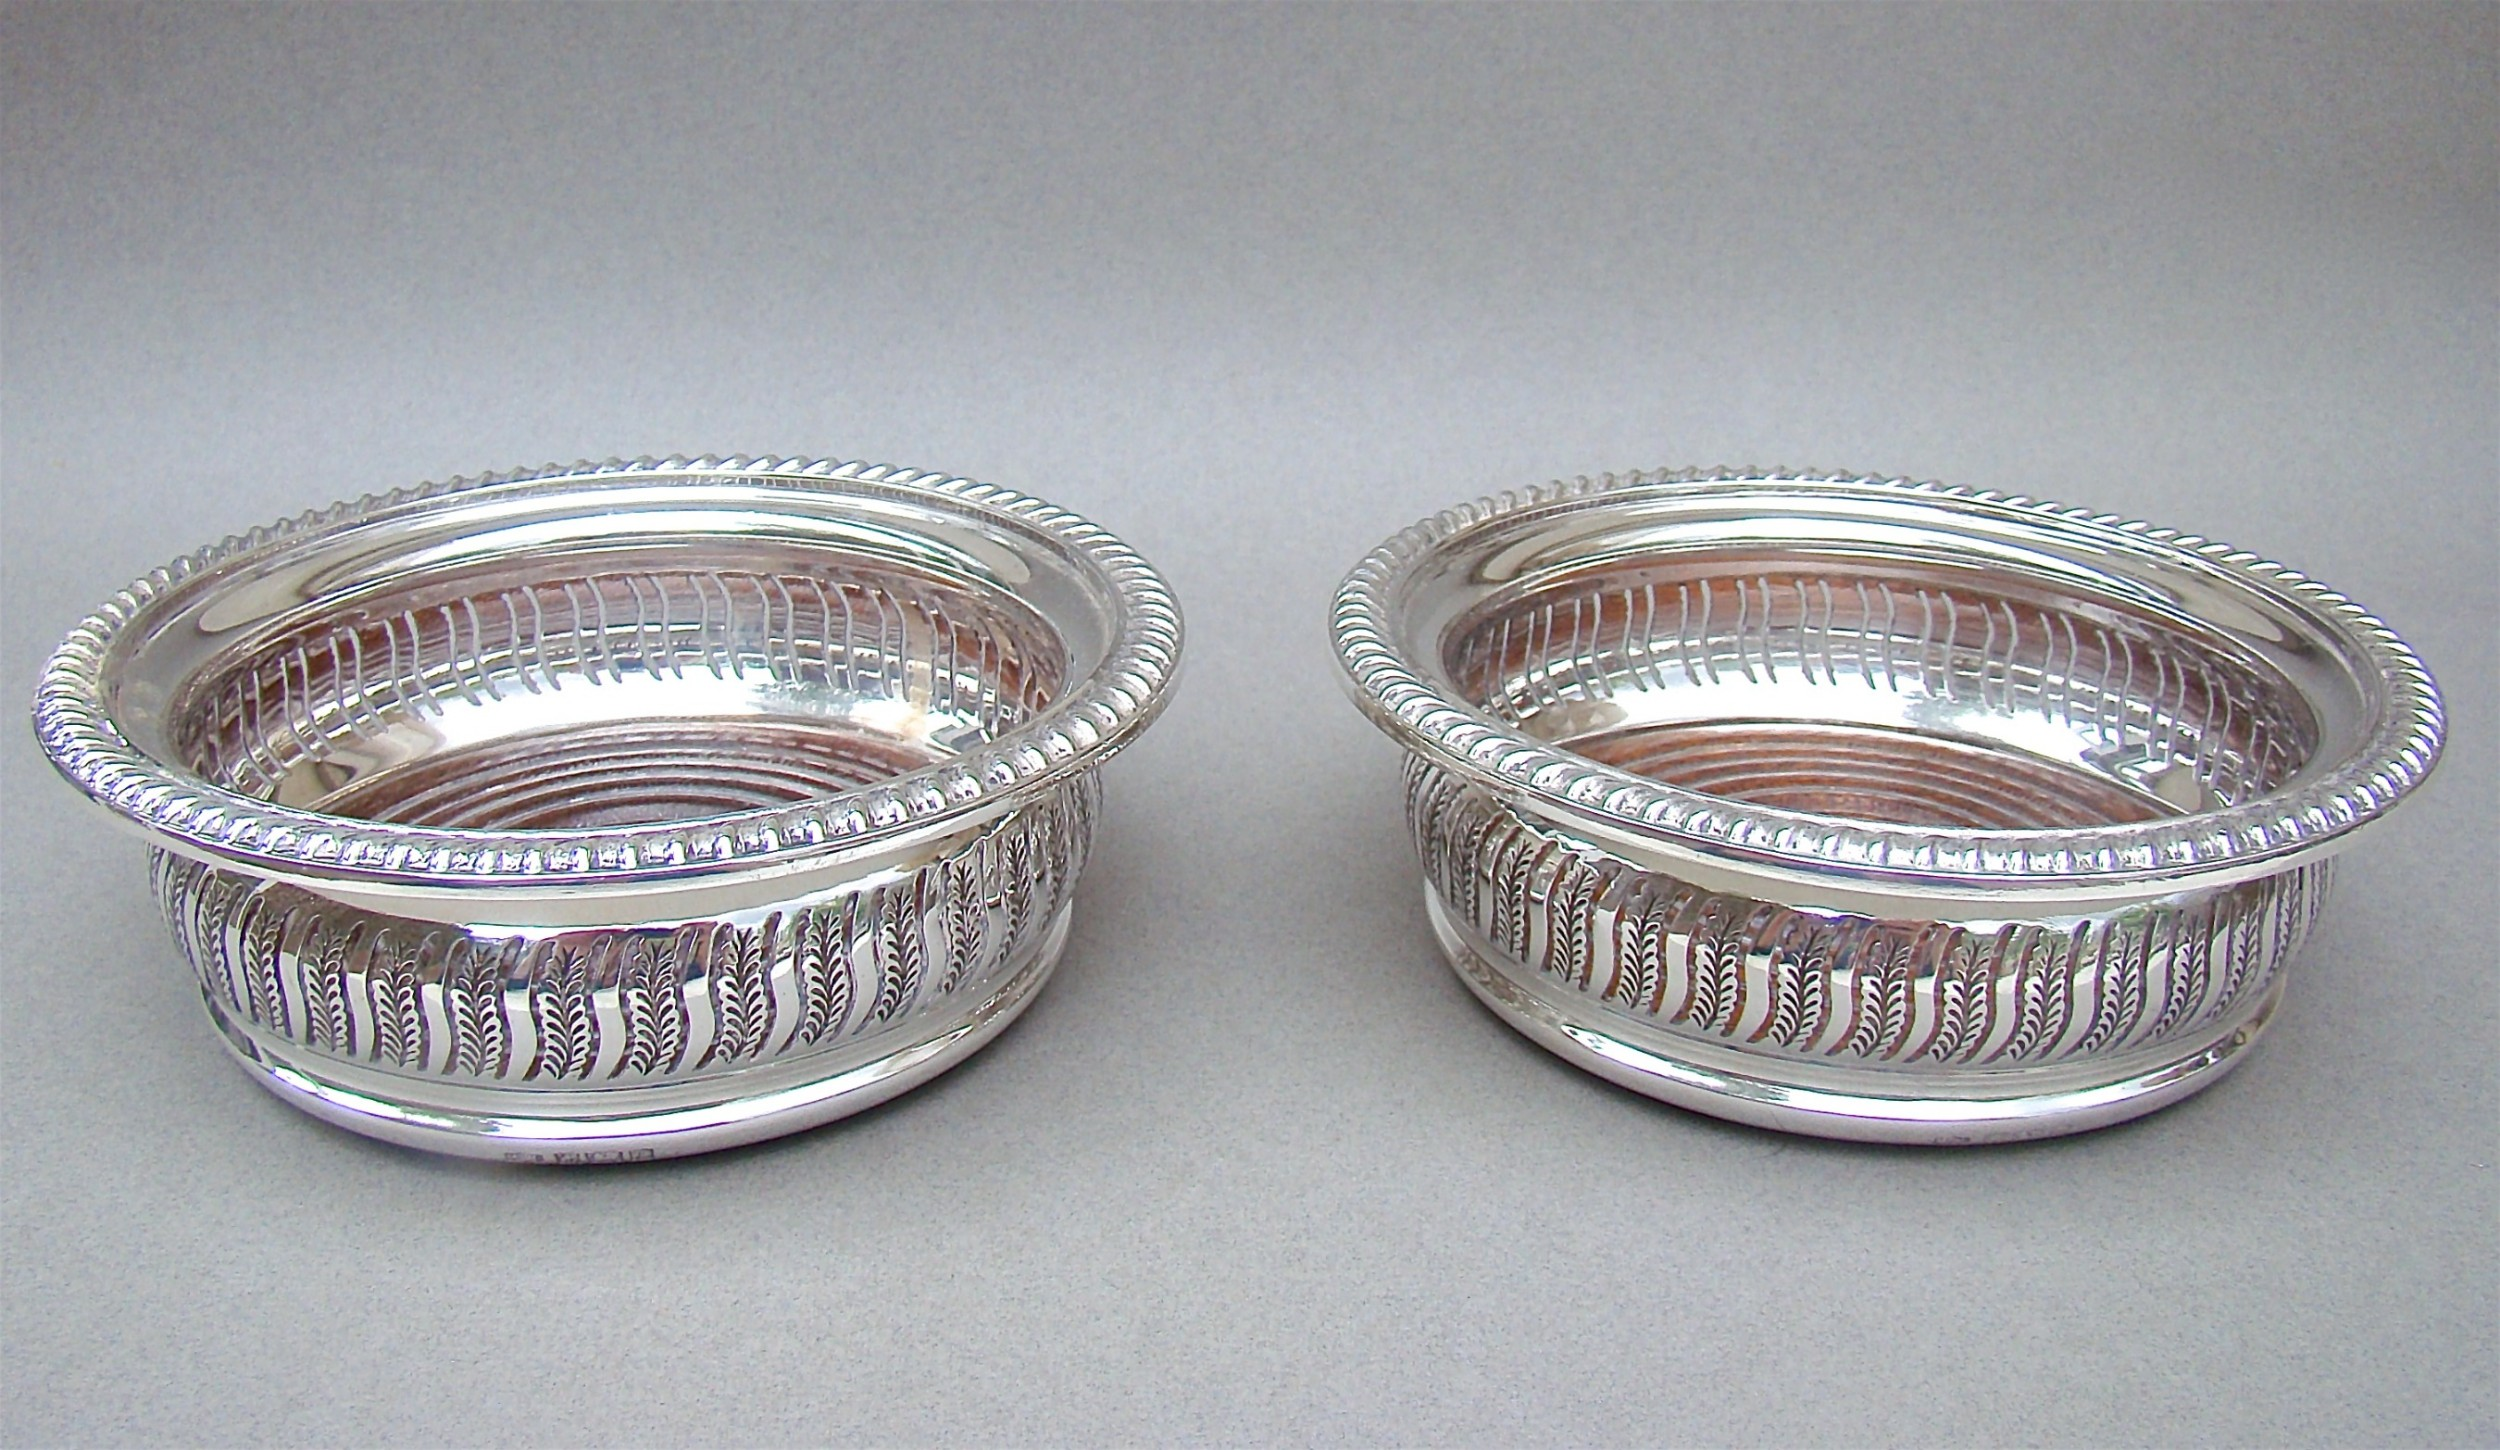 superb pair of mid 20th century solid silver wine coasters by mappin webb birmingham 1968